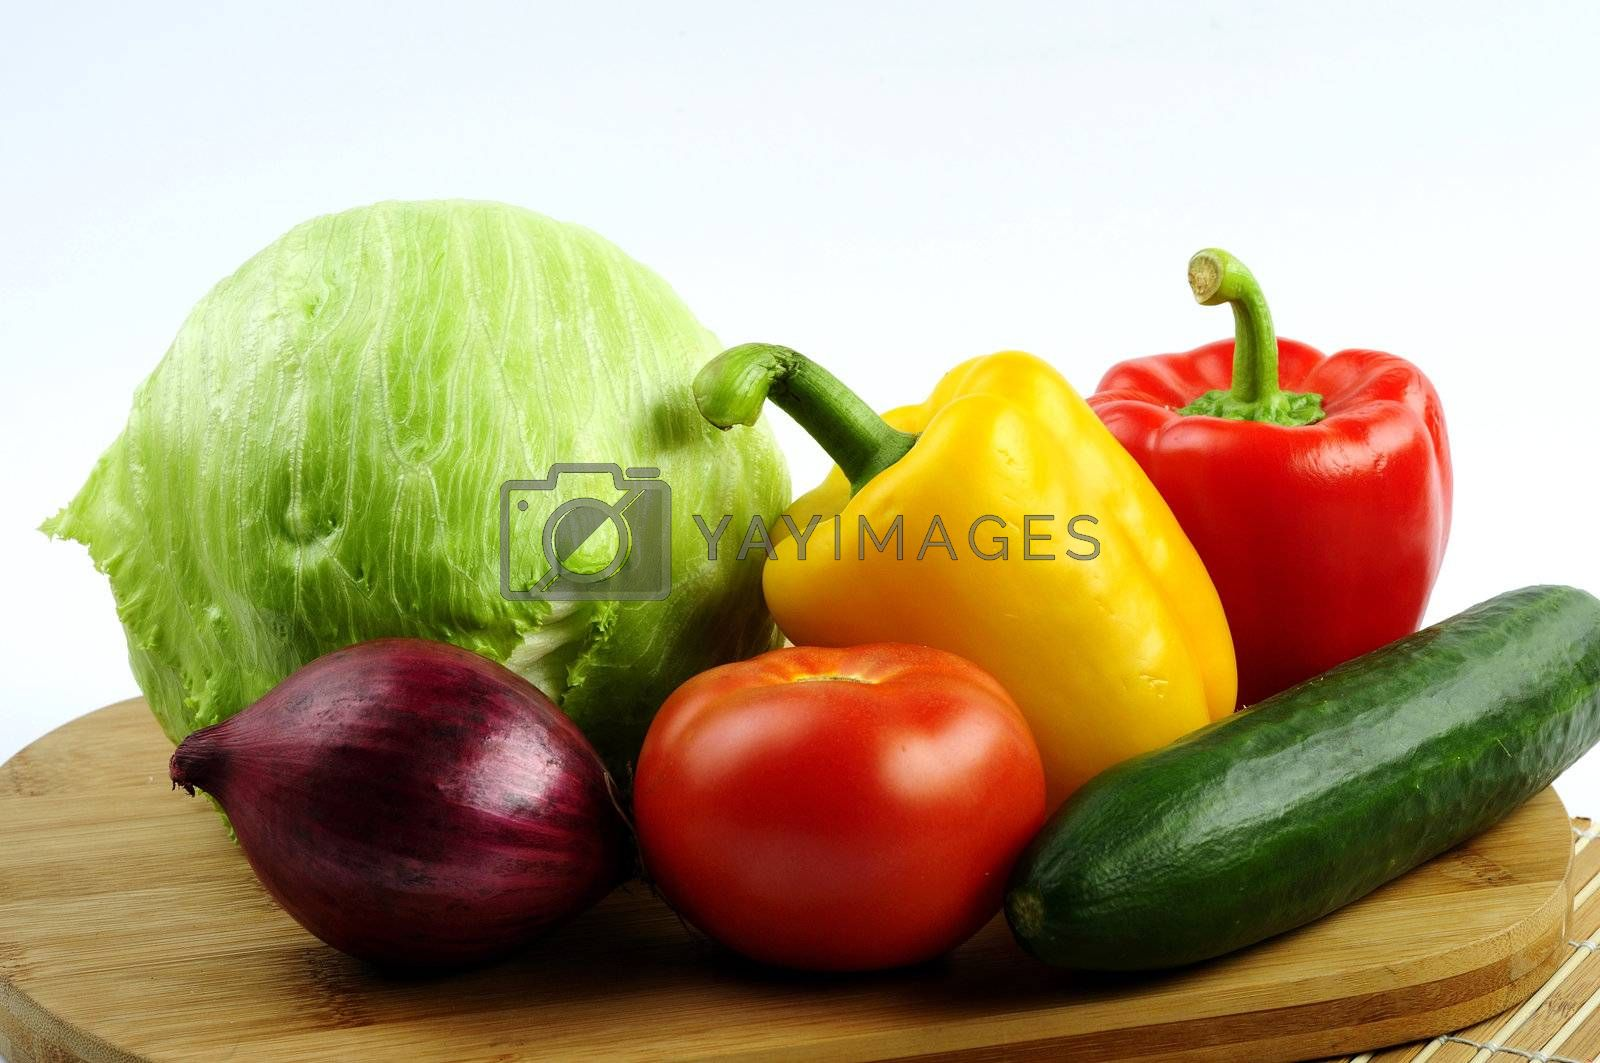 Royalty free image of vegetables by dundersztyc